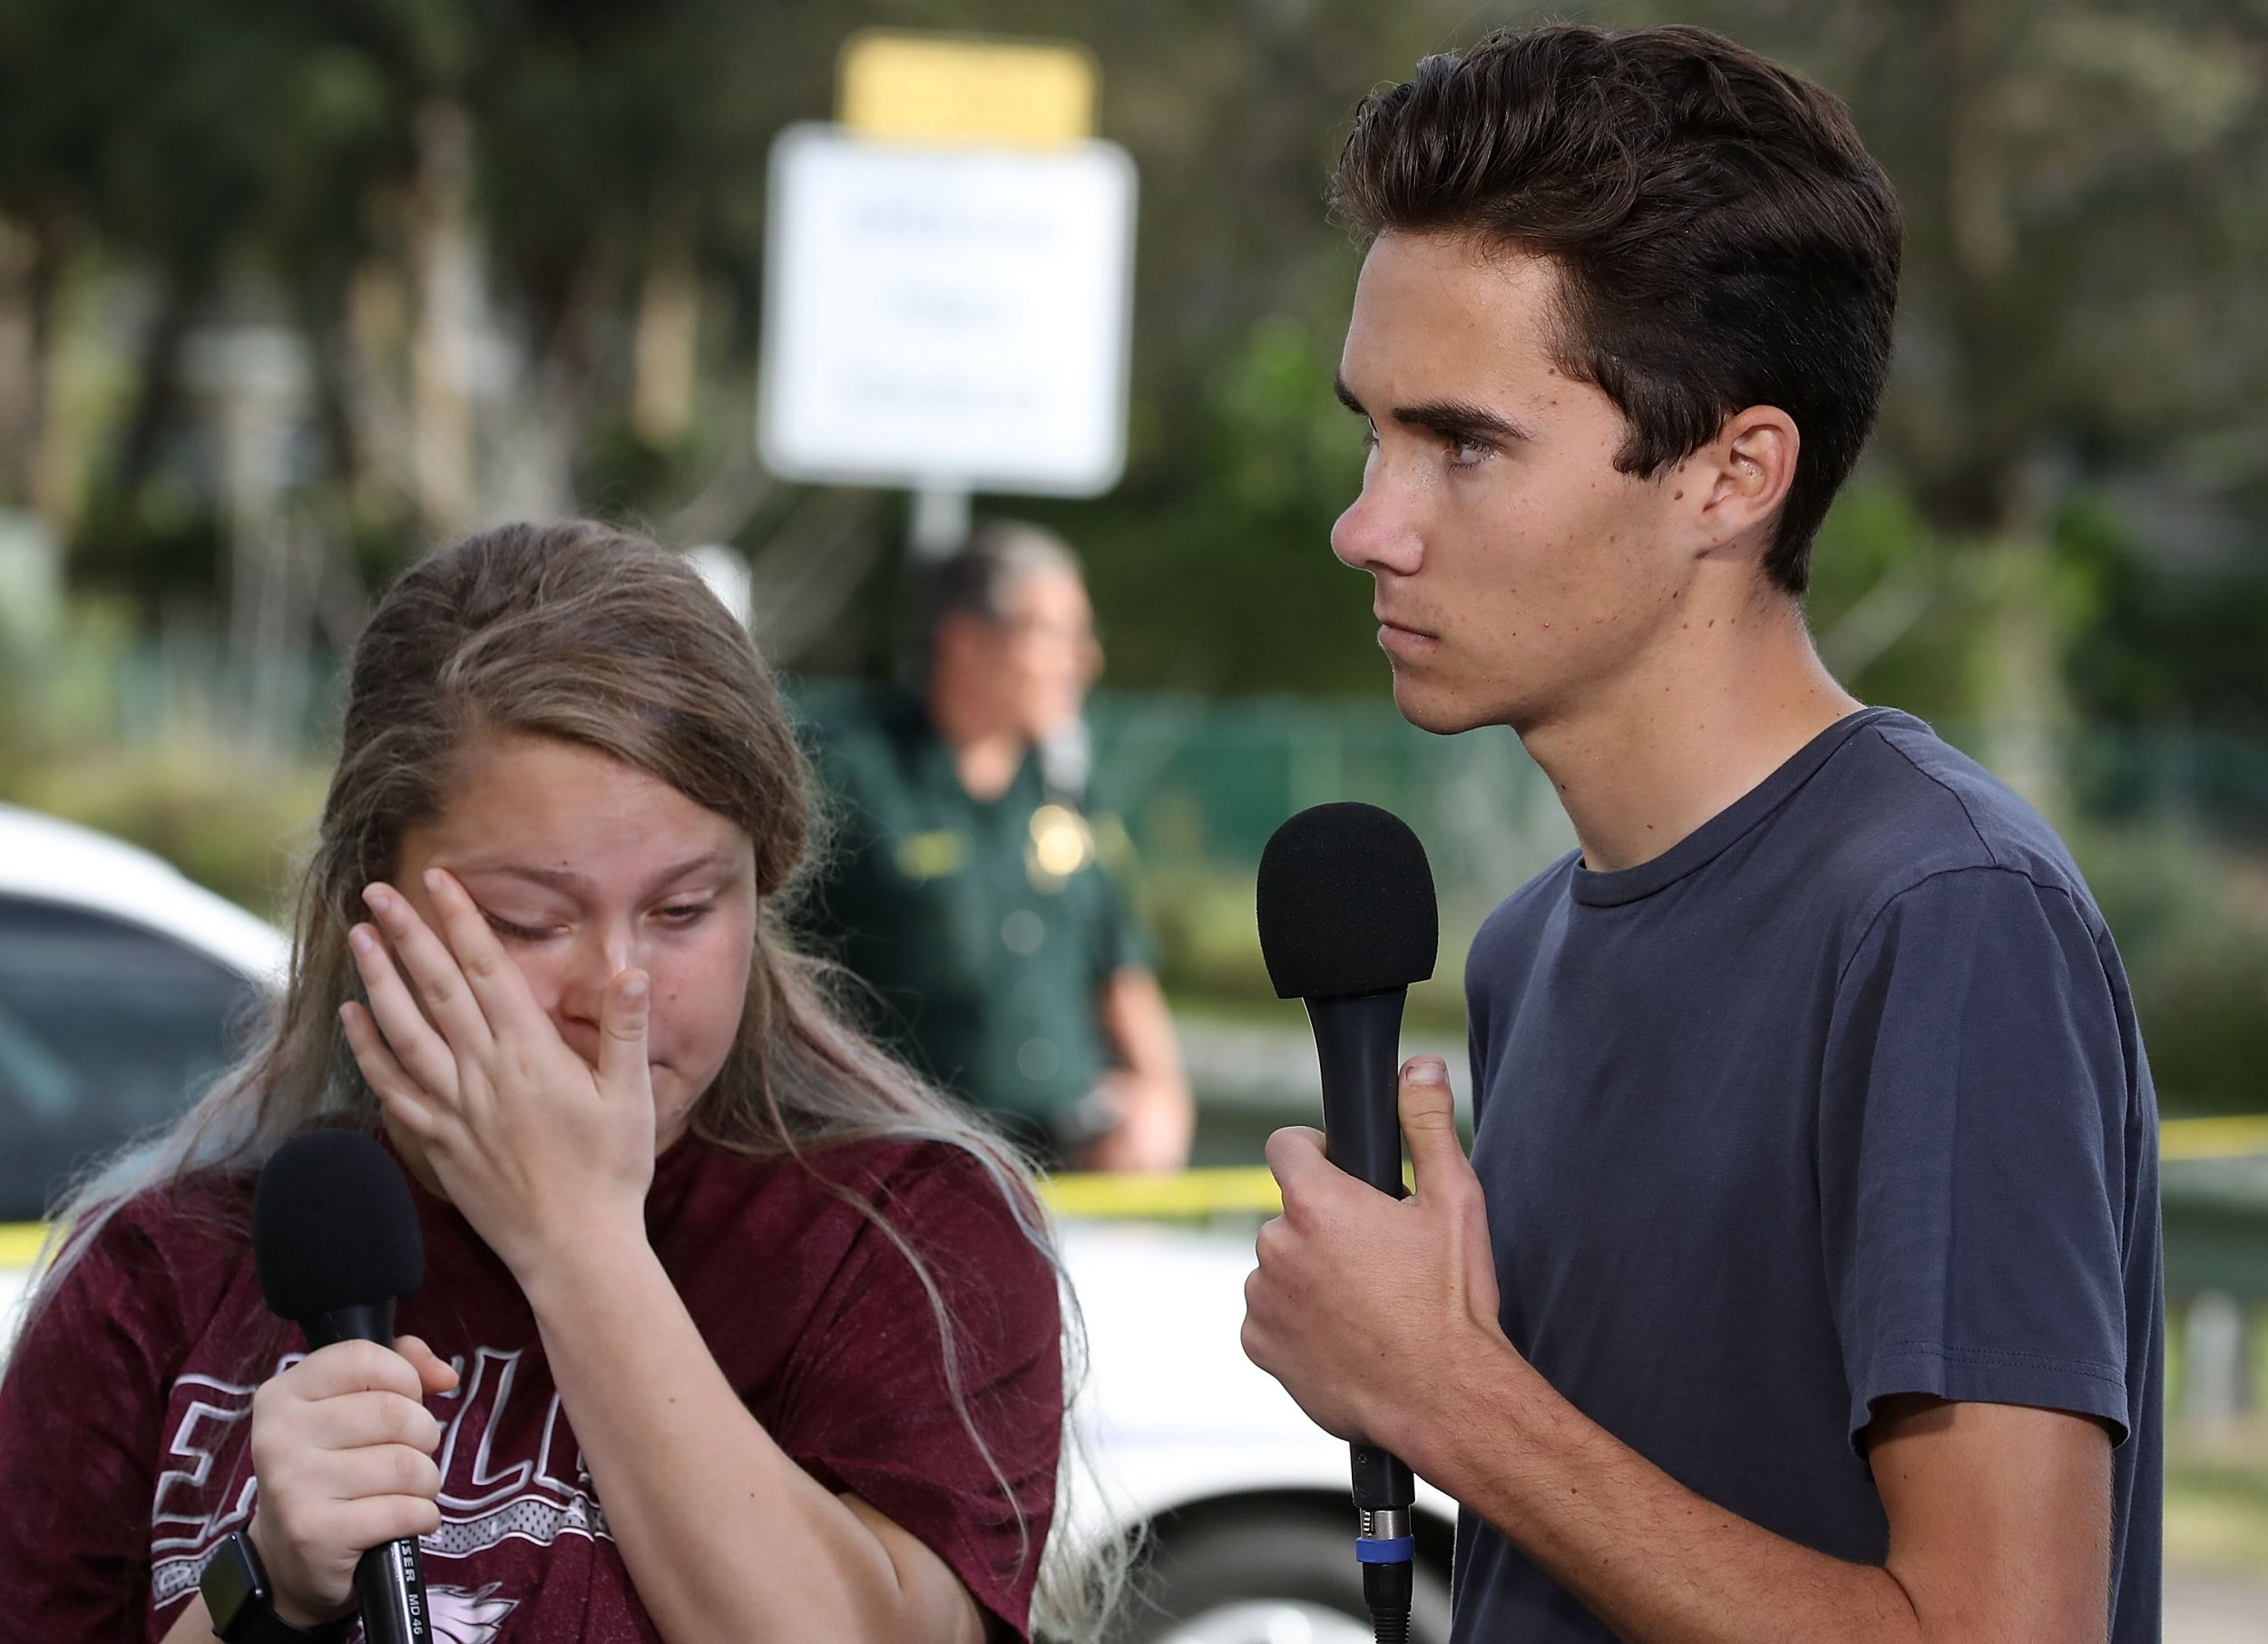 YouTube, Facebook Promote Conspiracy Video Claiming School Shooting